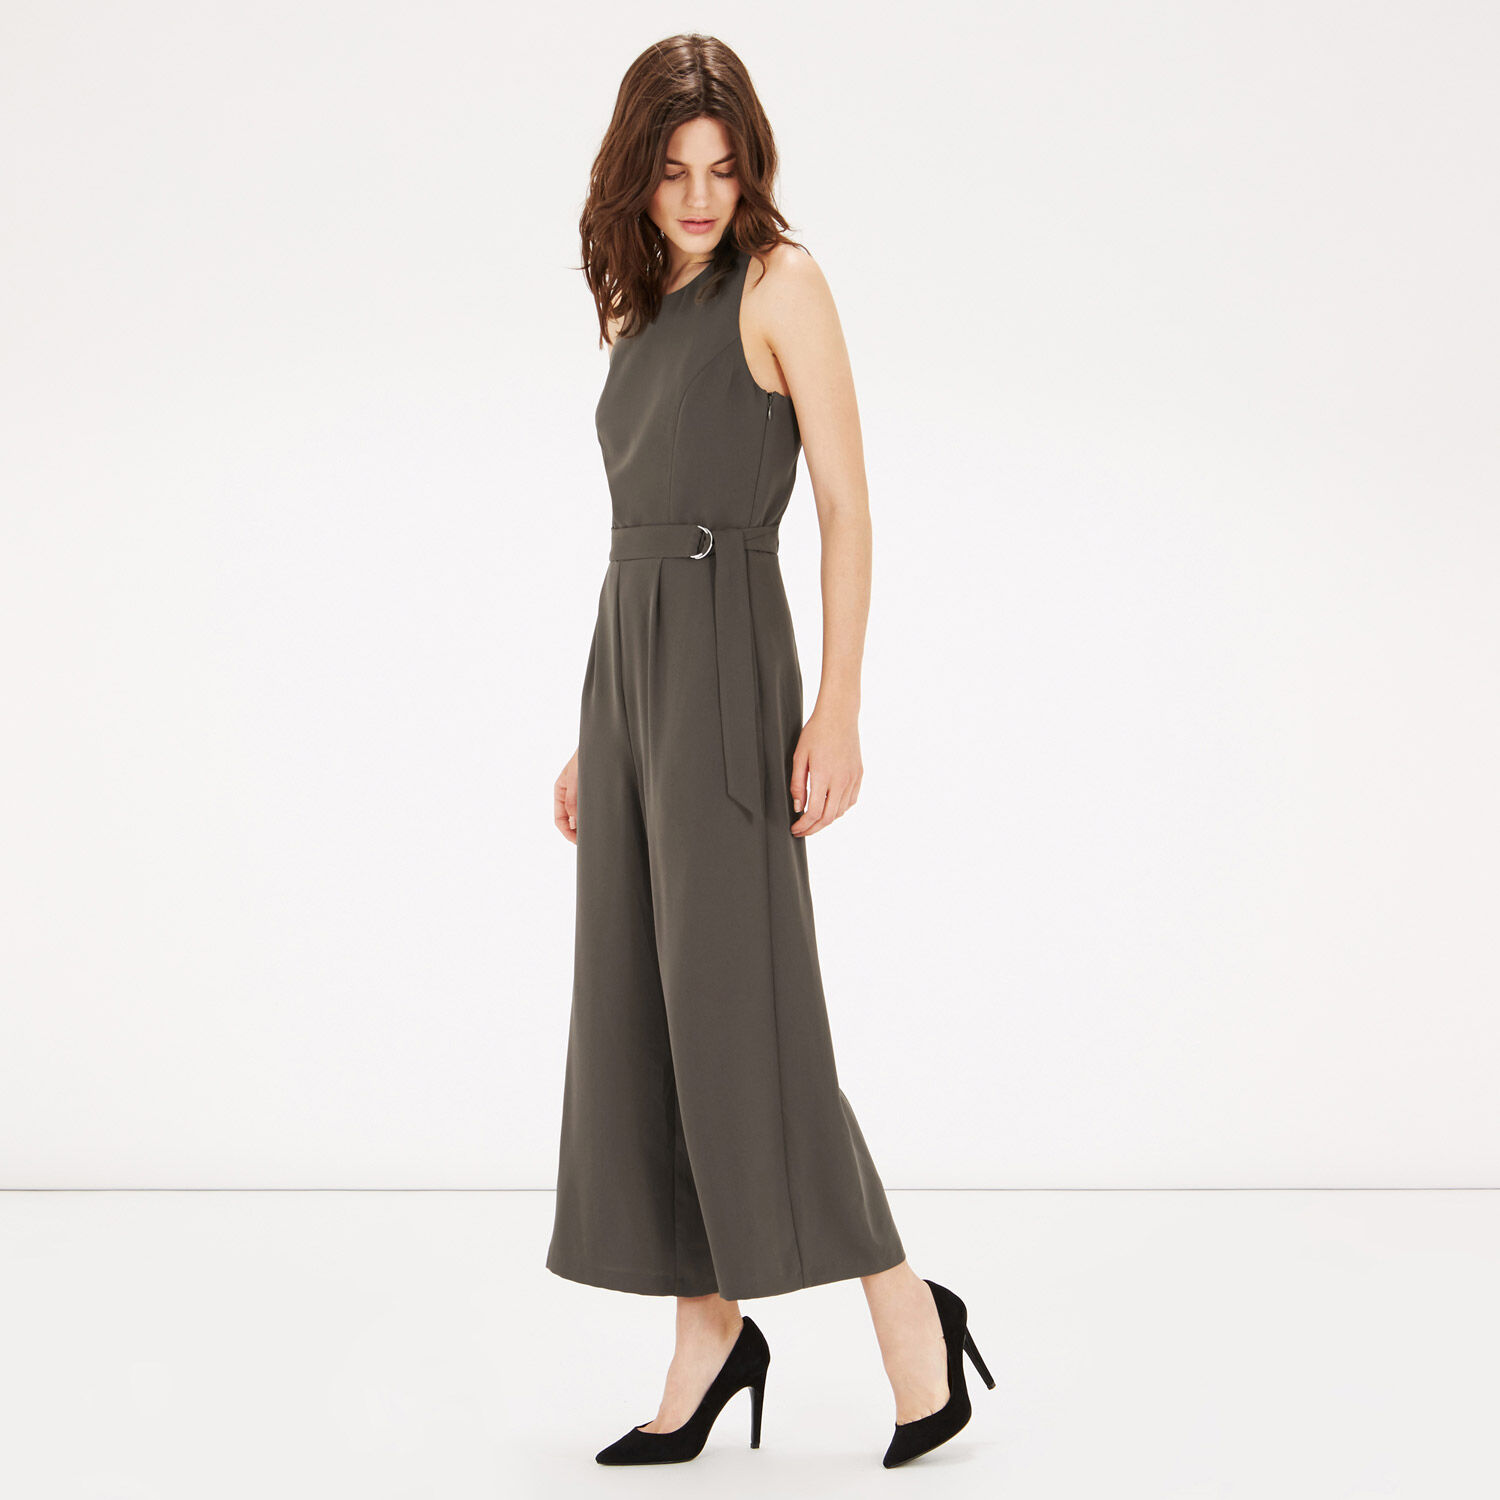 Warehouse, O-RING BELTED JUMPSUIT Khaki 1